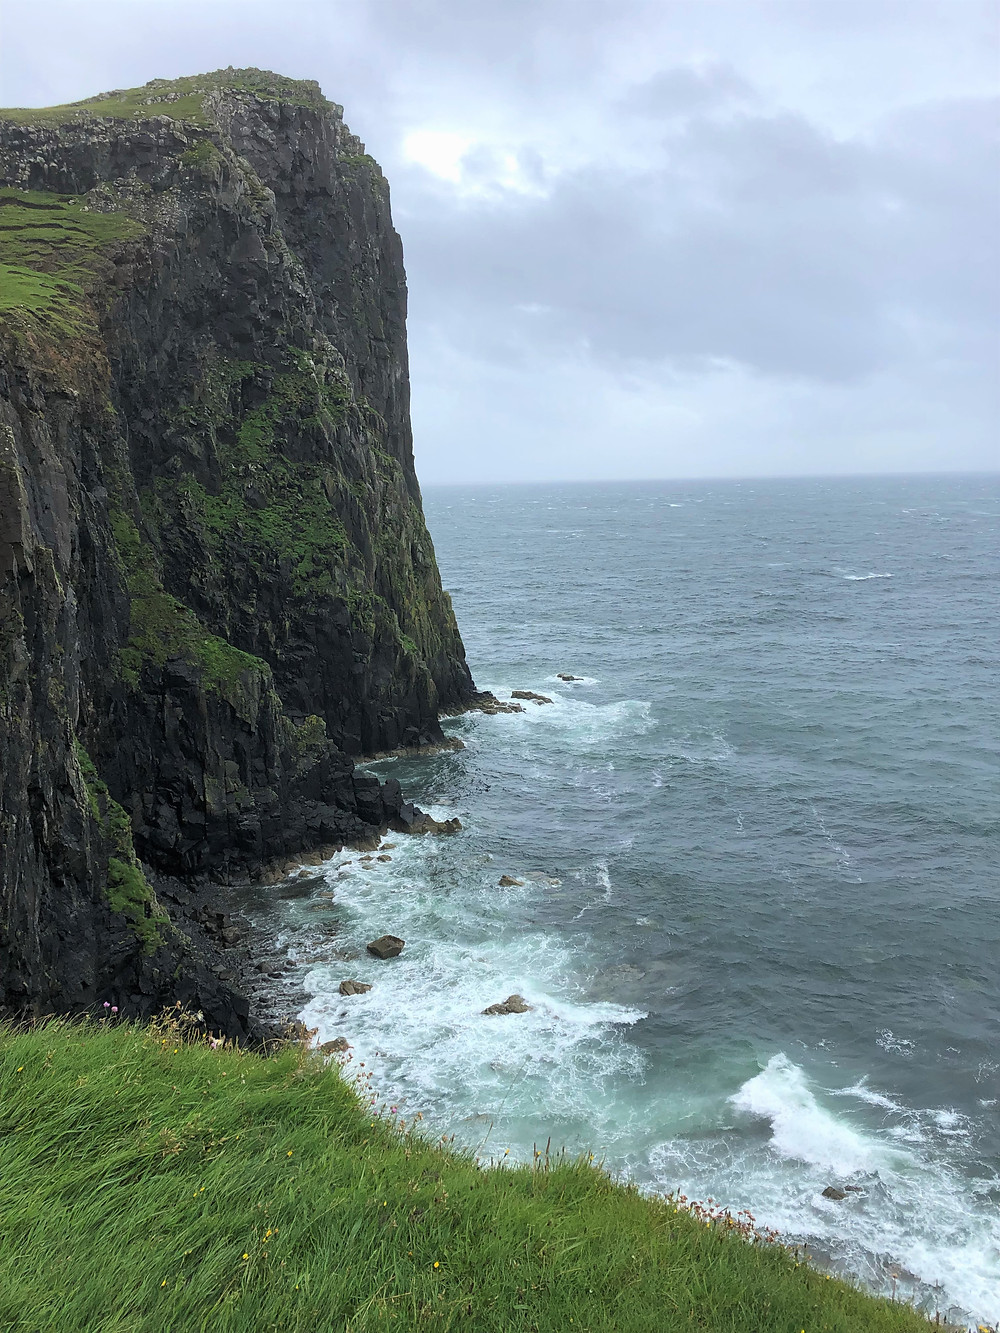 Towering sea cliffs of Neist Point on the Isle of Skye